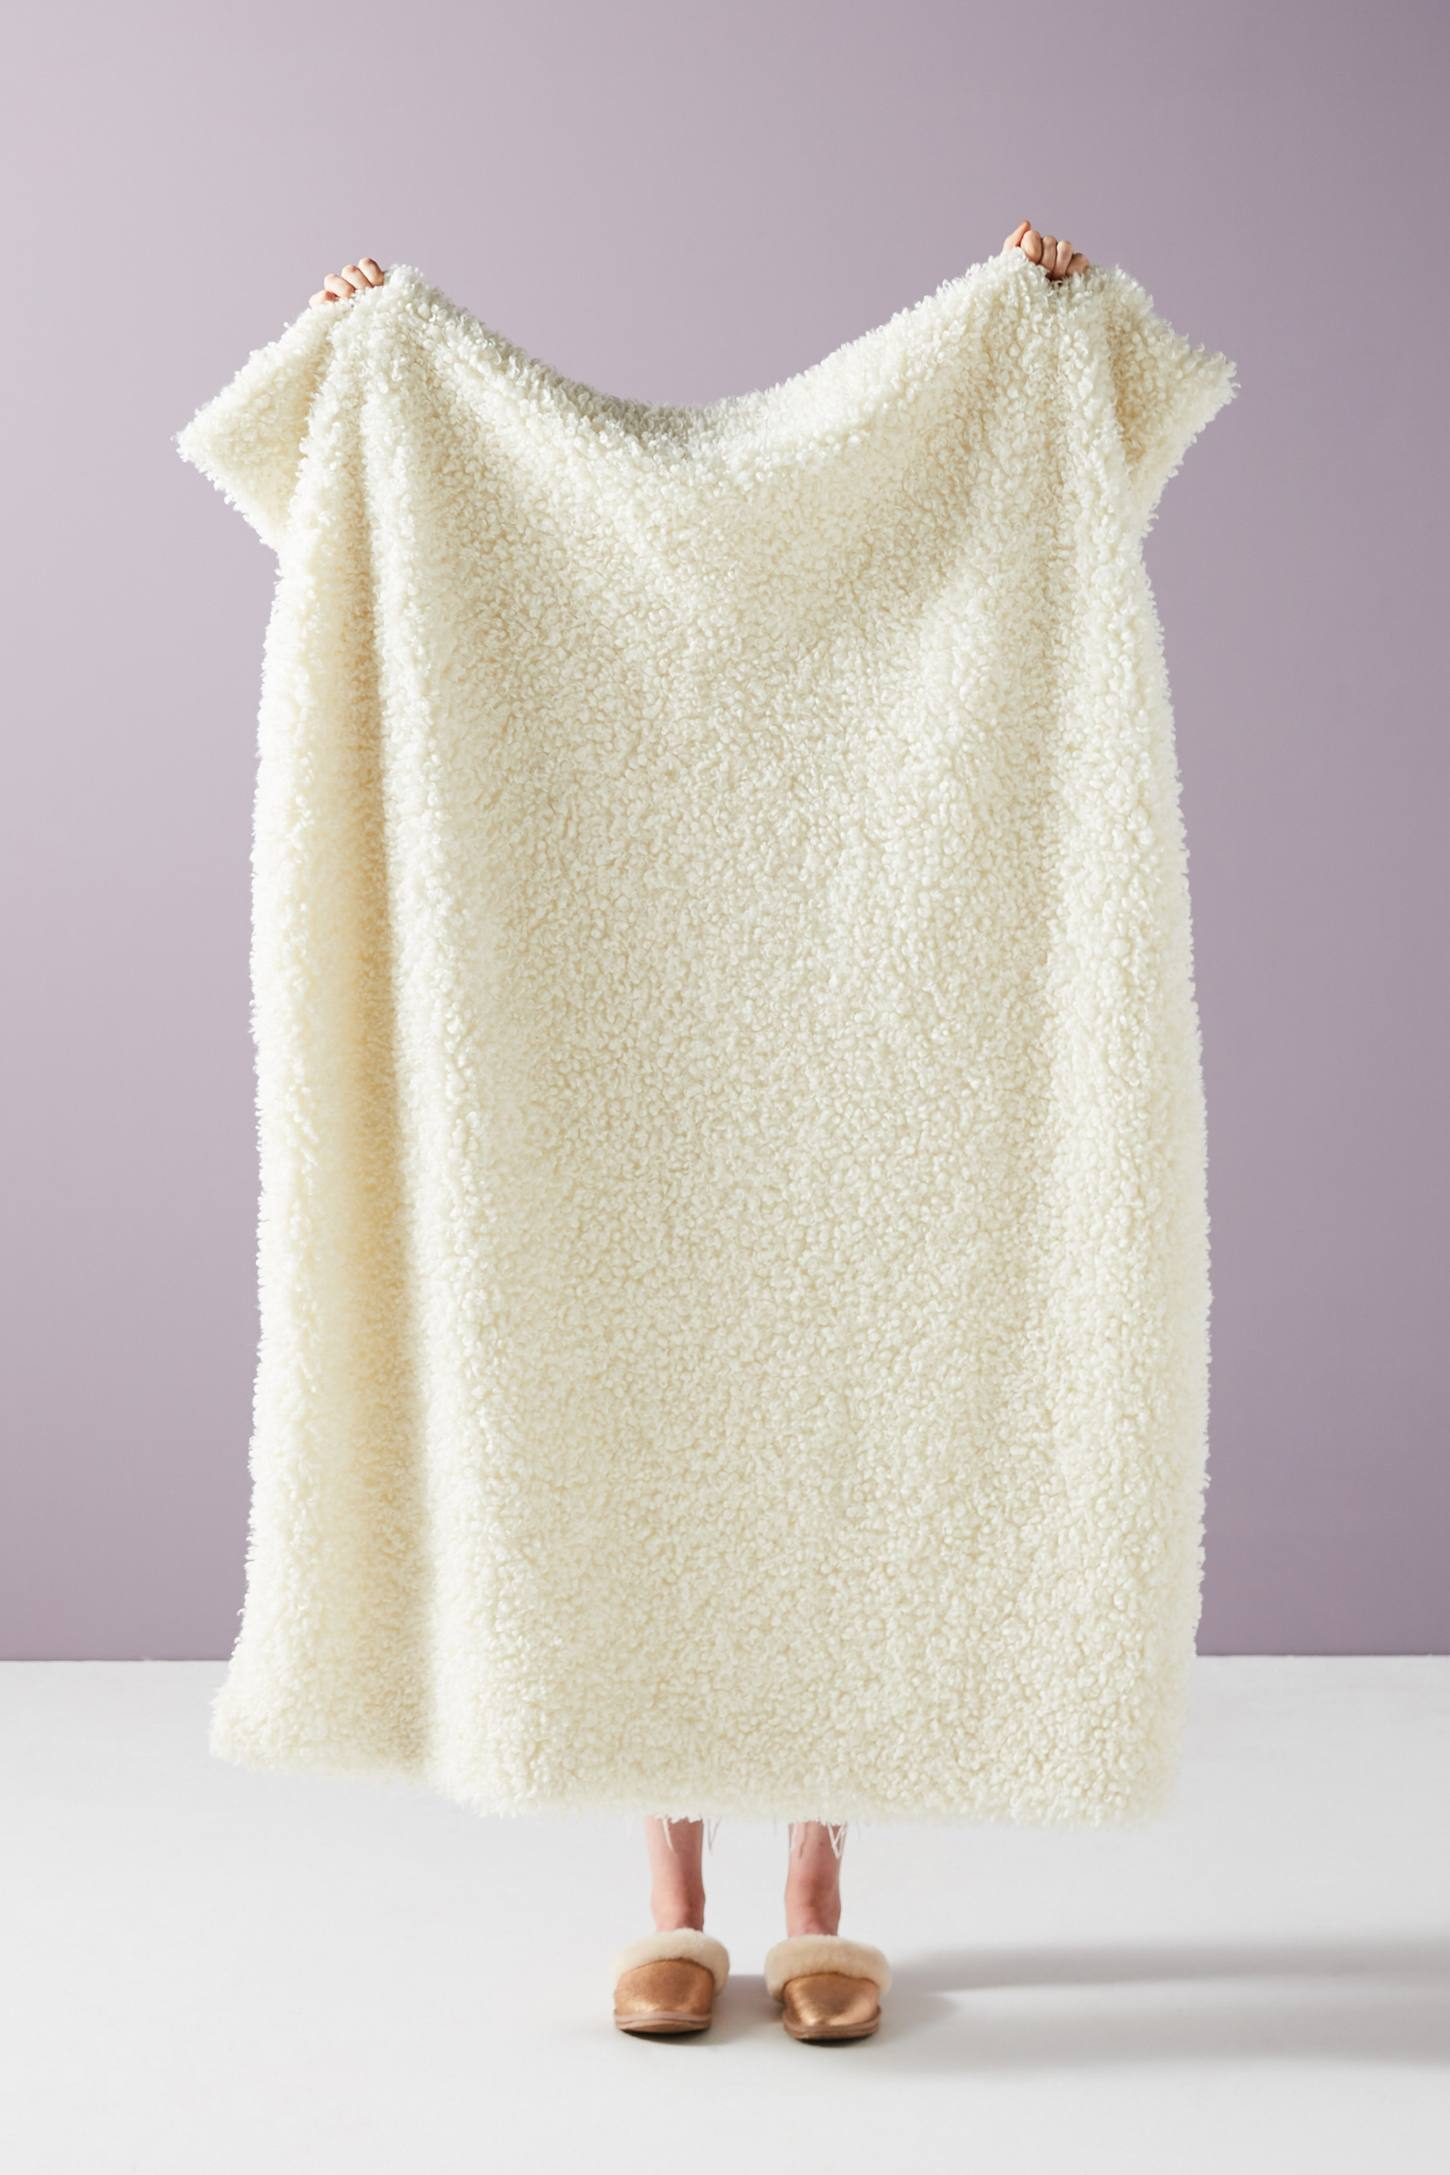 Lounge Throw Fuzzy Fur Faux Throw Blanket Cozy Lounging Lounge Ivory Home